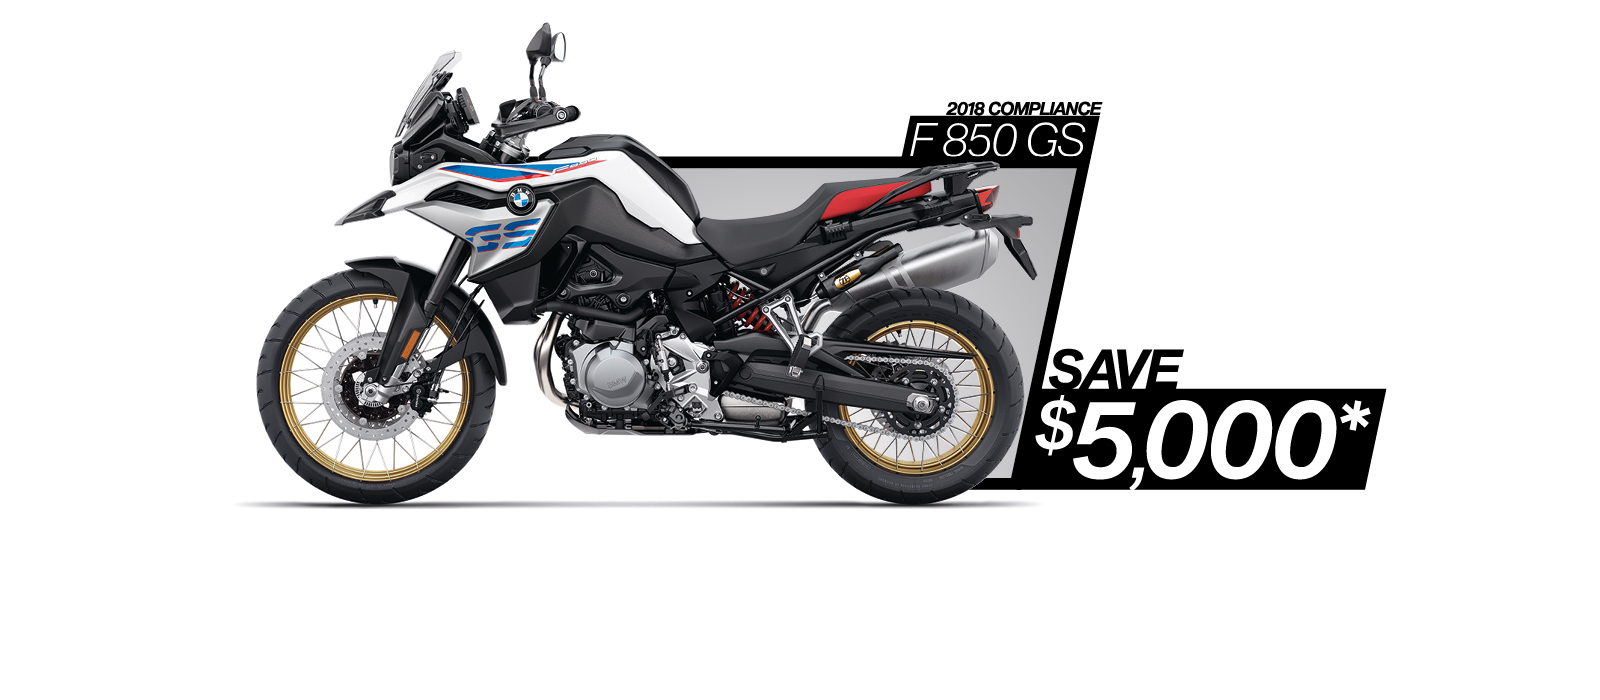 F 850 GS on sale